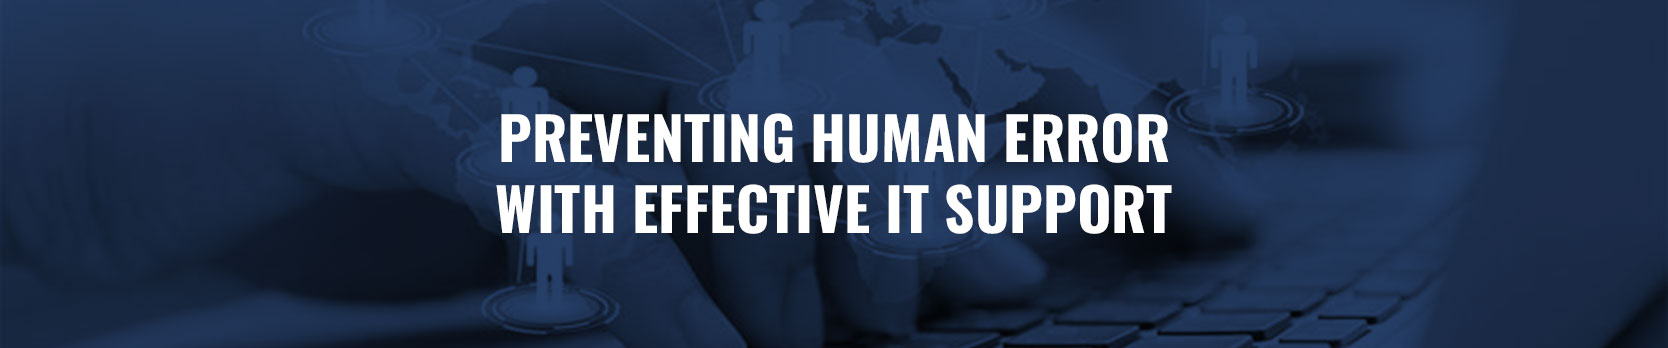 Preventing human error with effective IT support